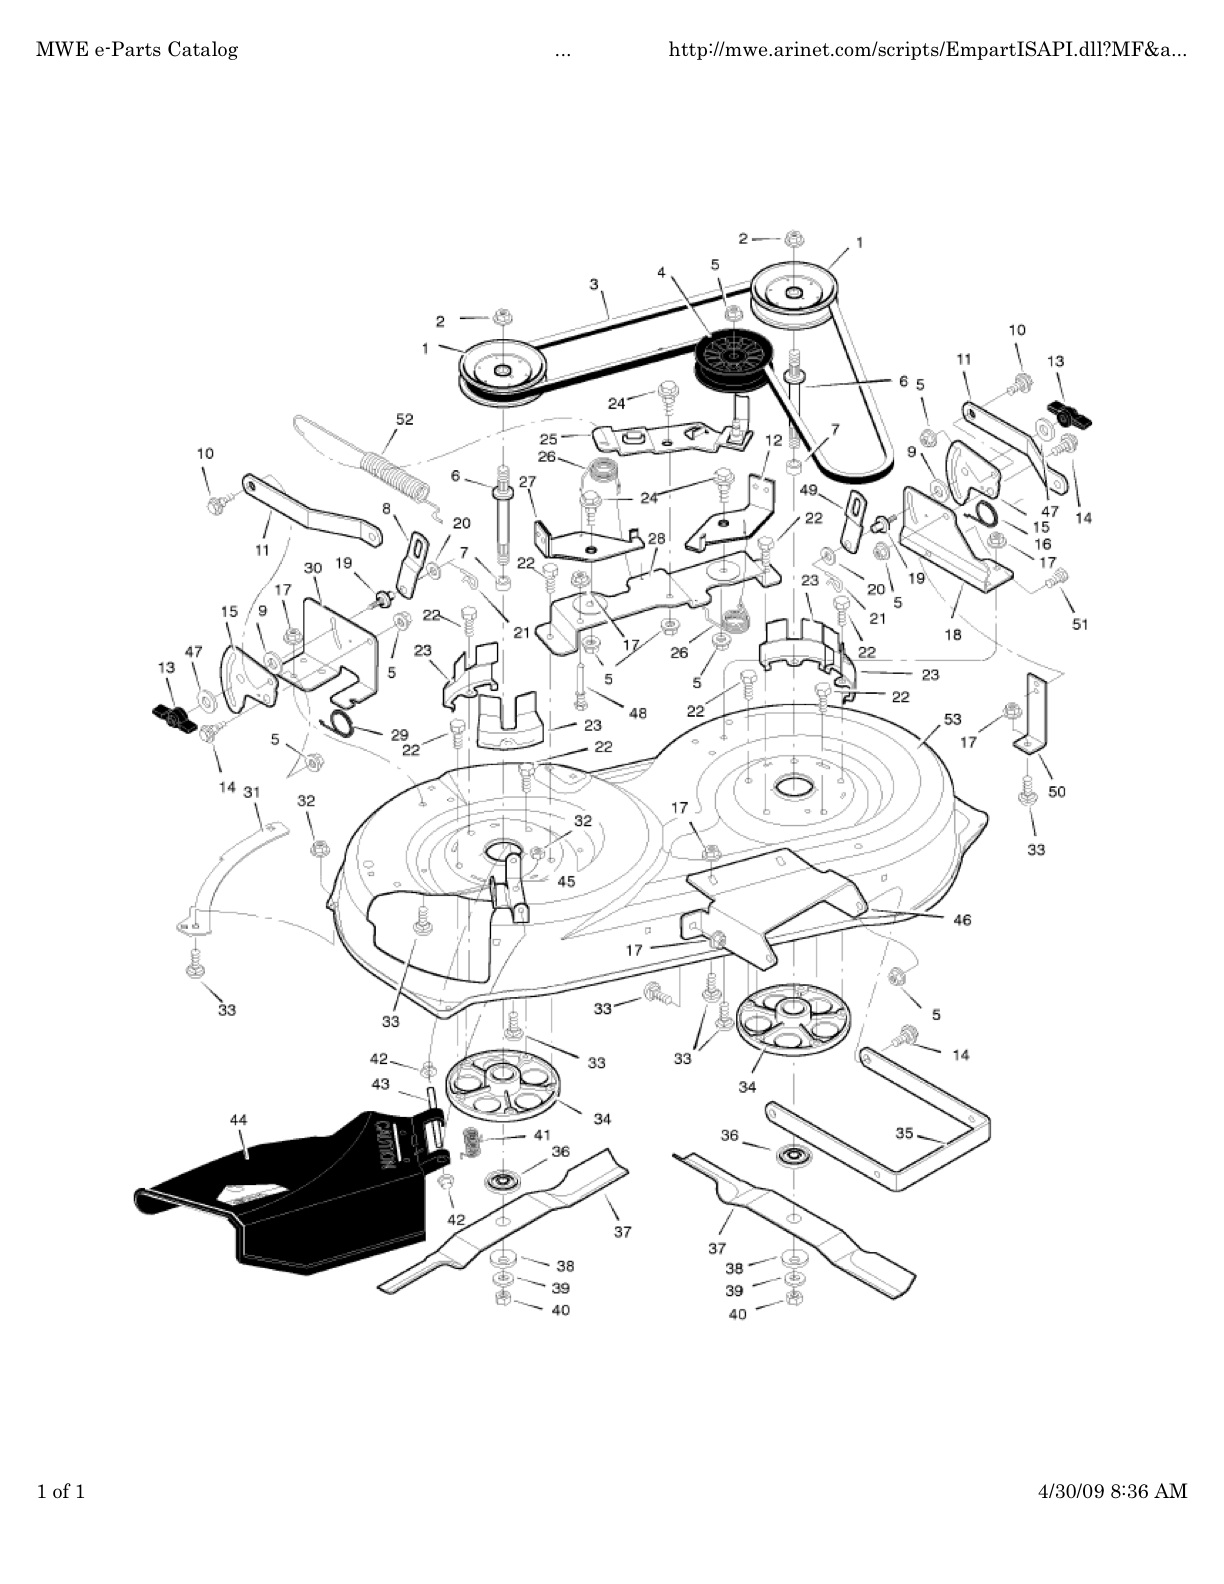 murray select riding mower wiring diagram with Murray Tractor Wiring Diagram on Lawn Mower Wiring Schematic also Page1 additionally Page1 moreover Yard Machine Drive Belt Diagram besides searspartsdirect.